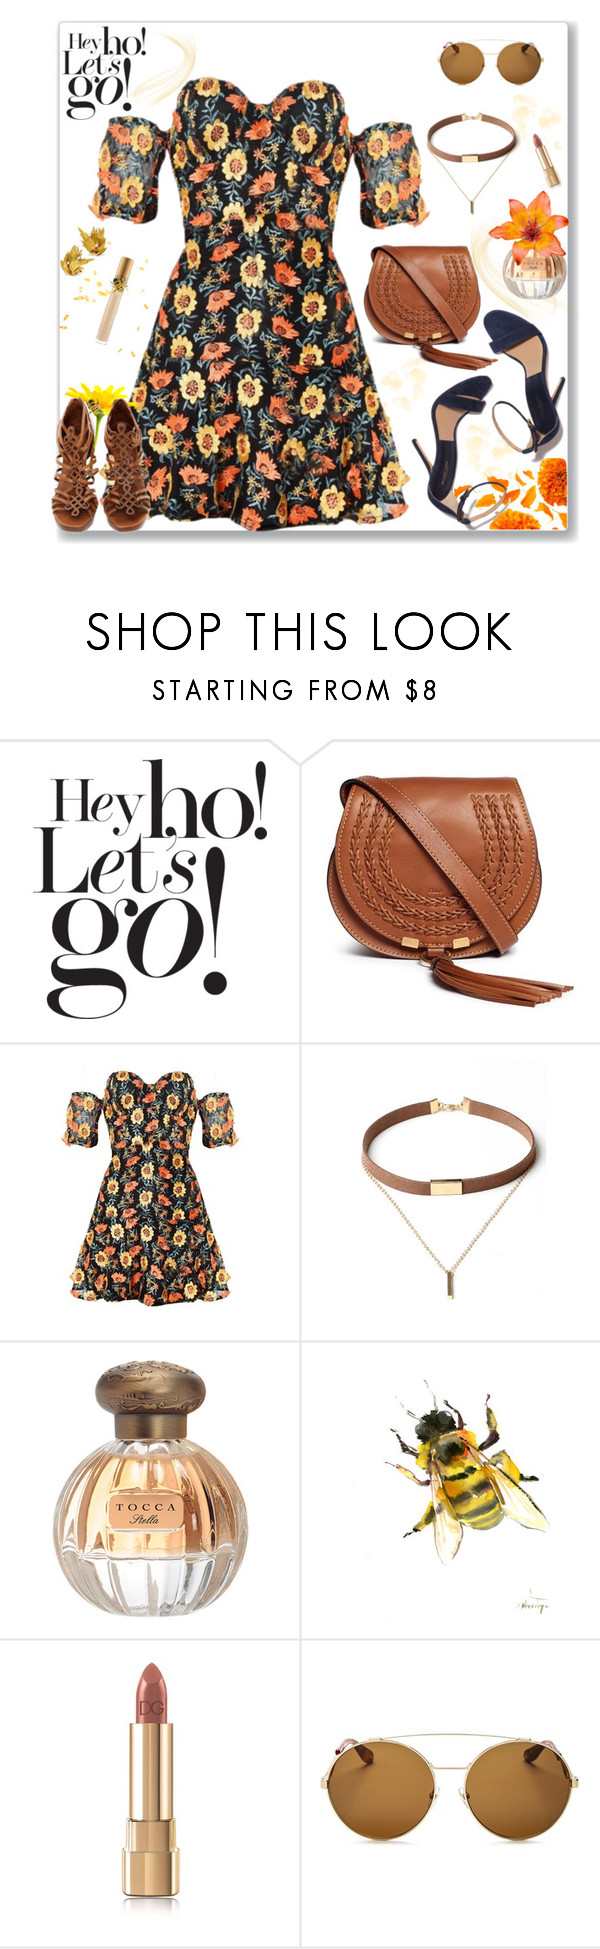 """The Perks Of Being A Wallflower"" by ladylillie ❤ liked on Polyvore featuring Damaris, Chloé, For Love & Lemons, WithChic, Tocca, Diane Von Furstenberg, MAC Cosmetics, Dolce&Gabbana and Givenchy"